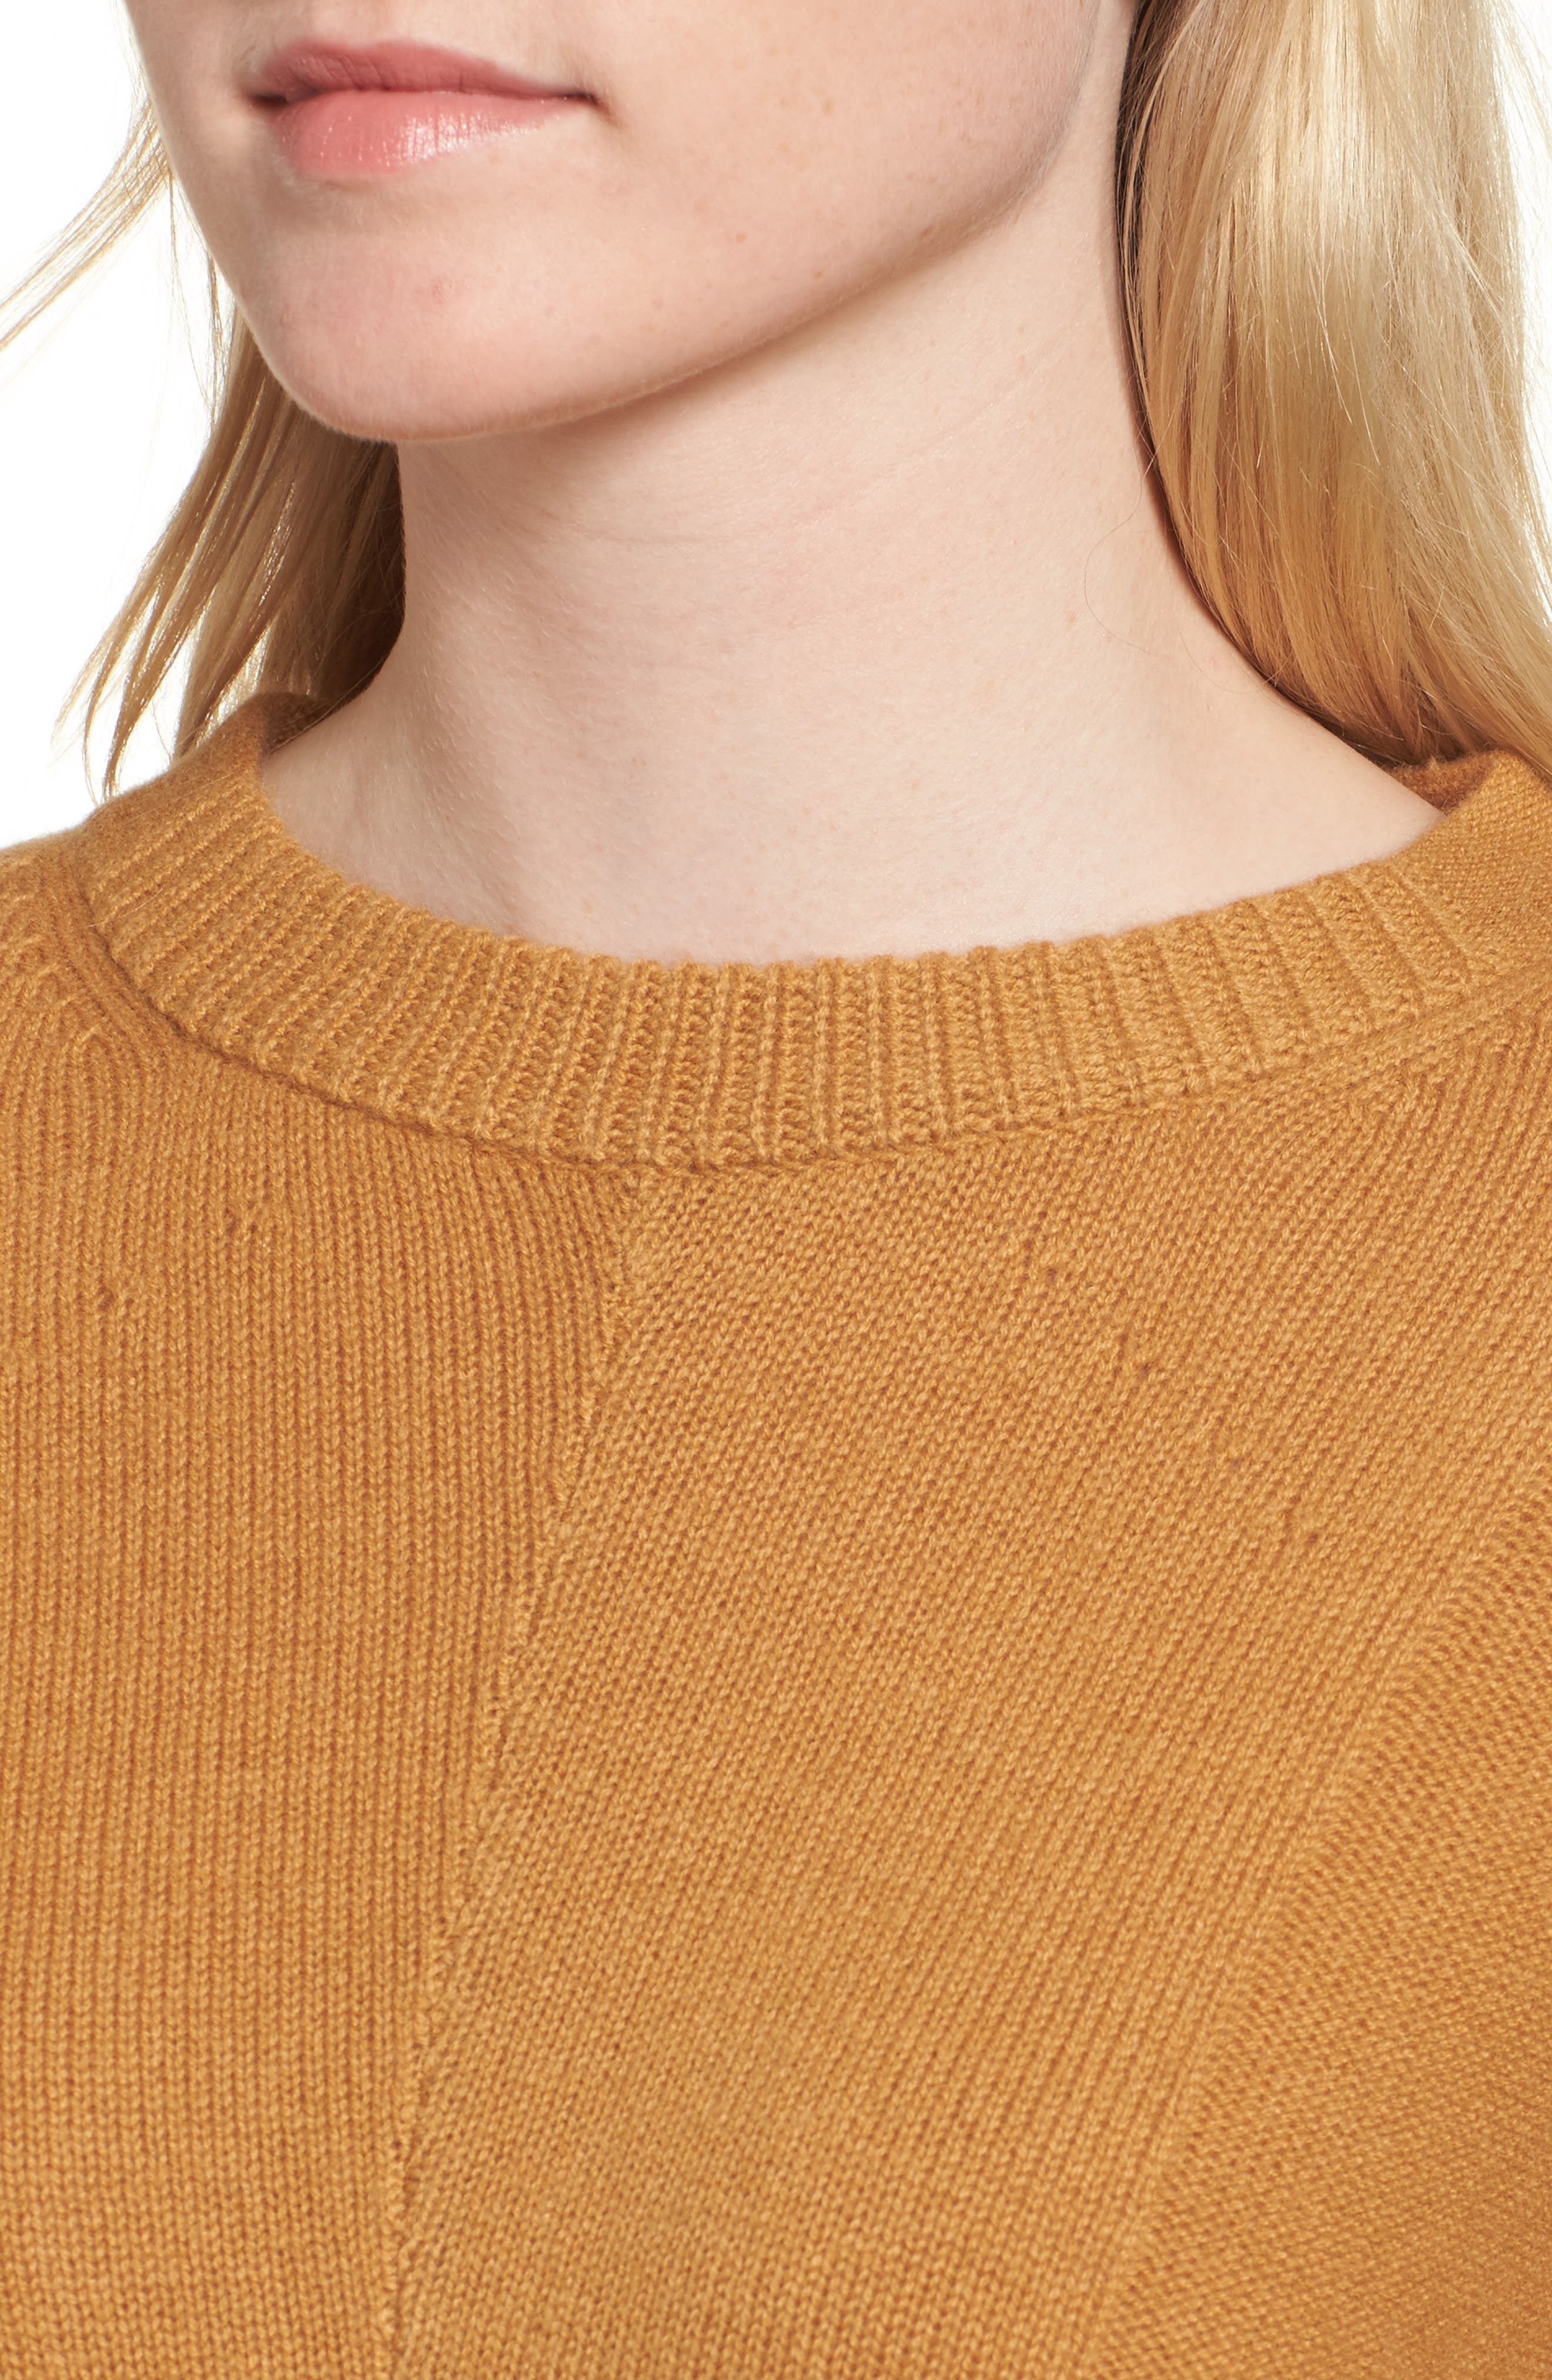 Joanna Wool & Cashmere Sweater,                             Alternate thumbnail 4, color,                             200